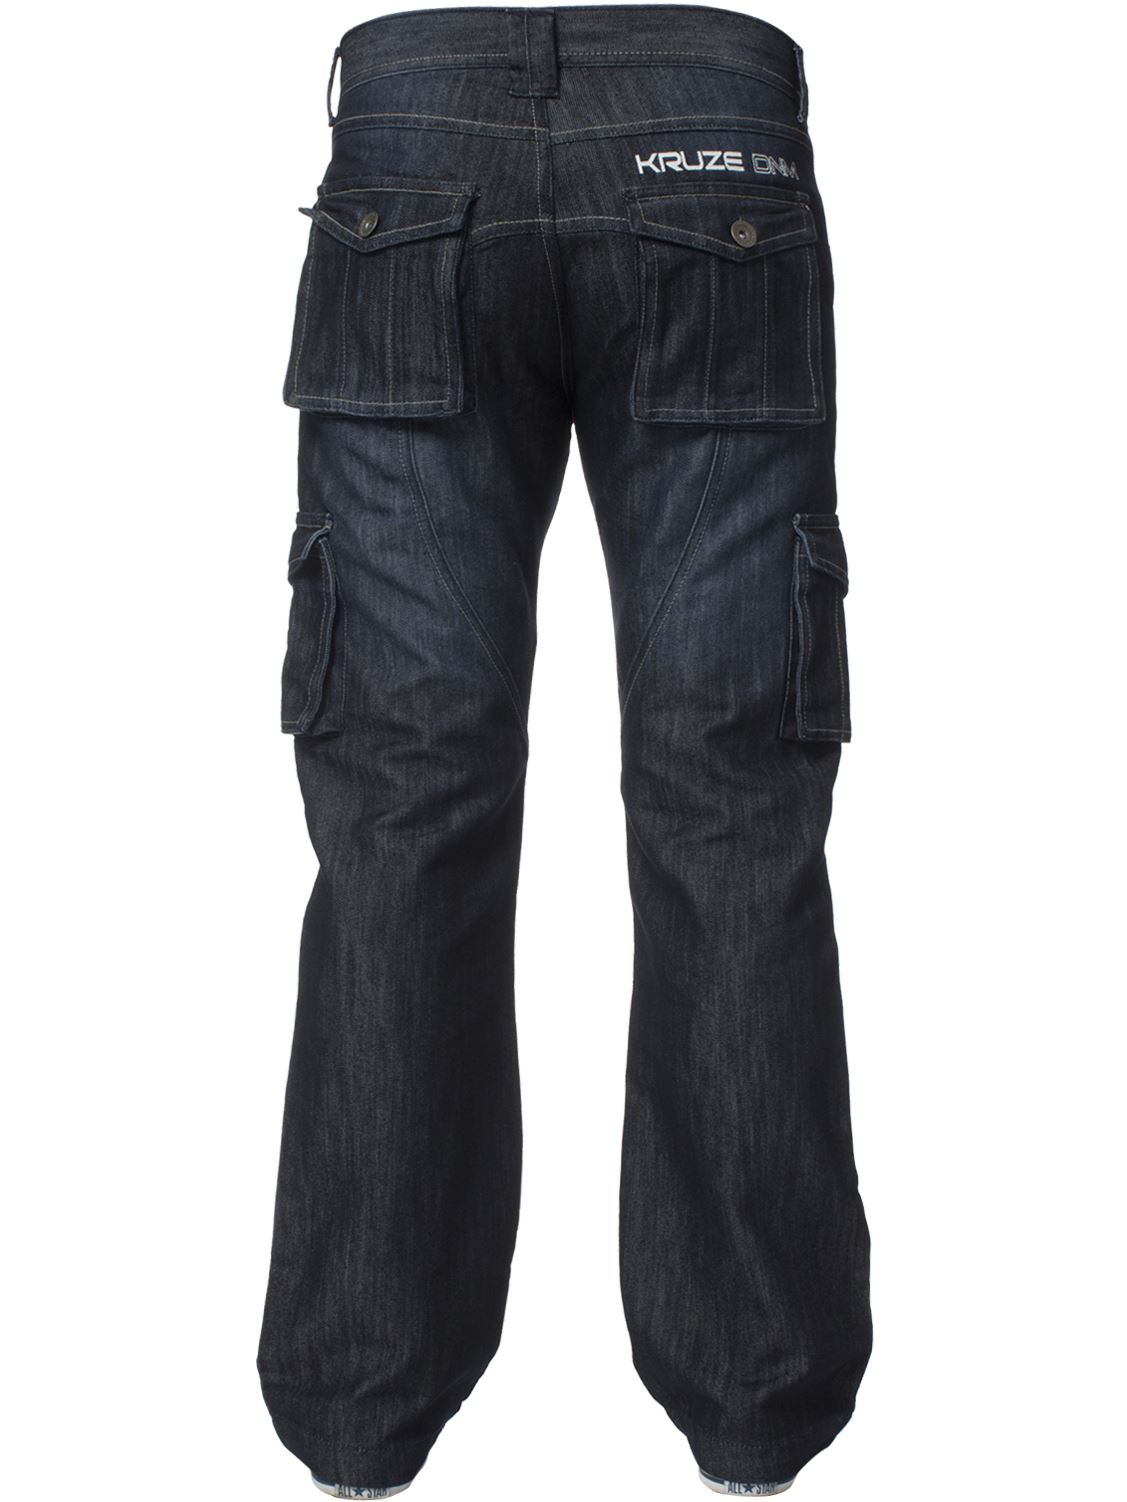 KRUZE-Mens-Combat-Jeans-Casual-Cargo-Work-Pants-Denim-Trousers-All-Waist-Sizes thumbnail 20